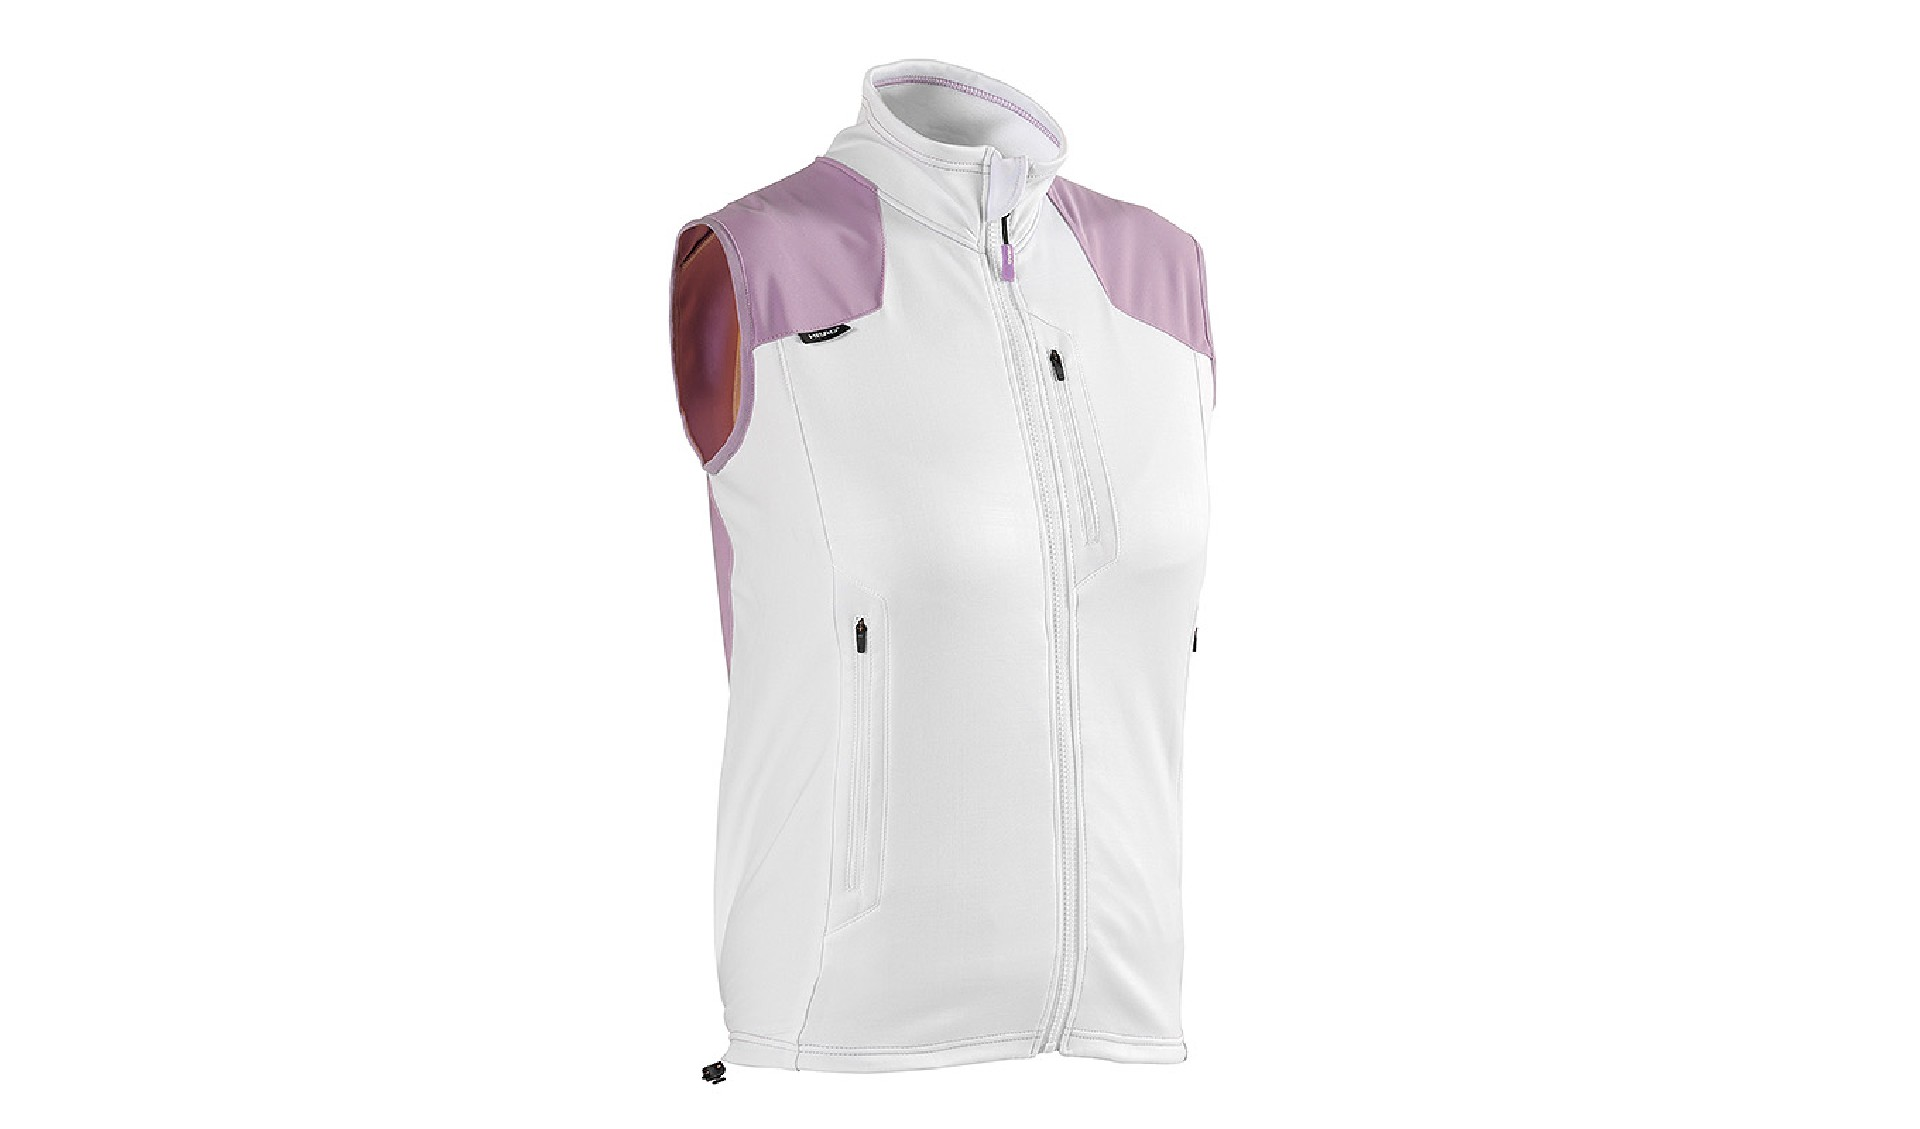 HEAD FLEXOR WMN VEST 2015/16